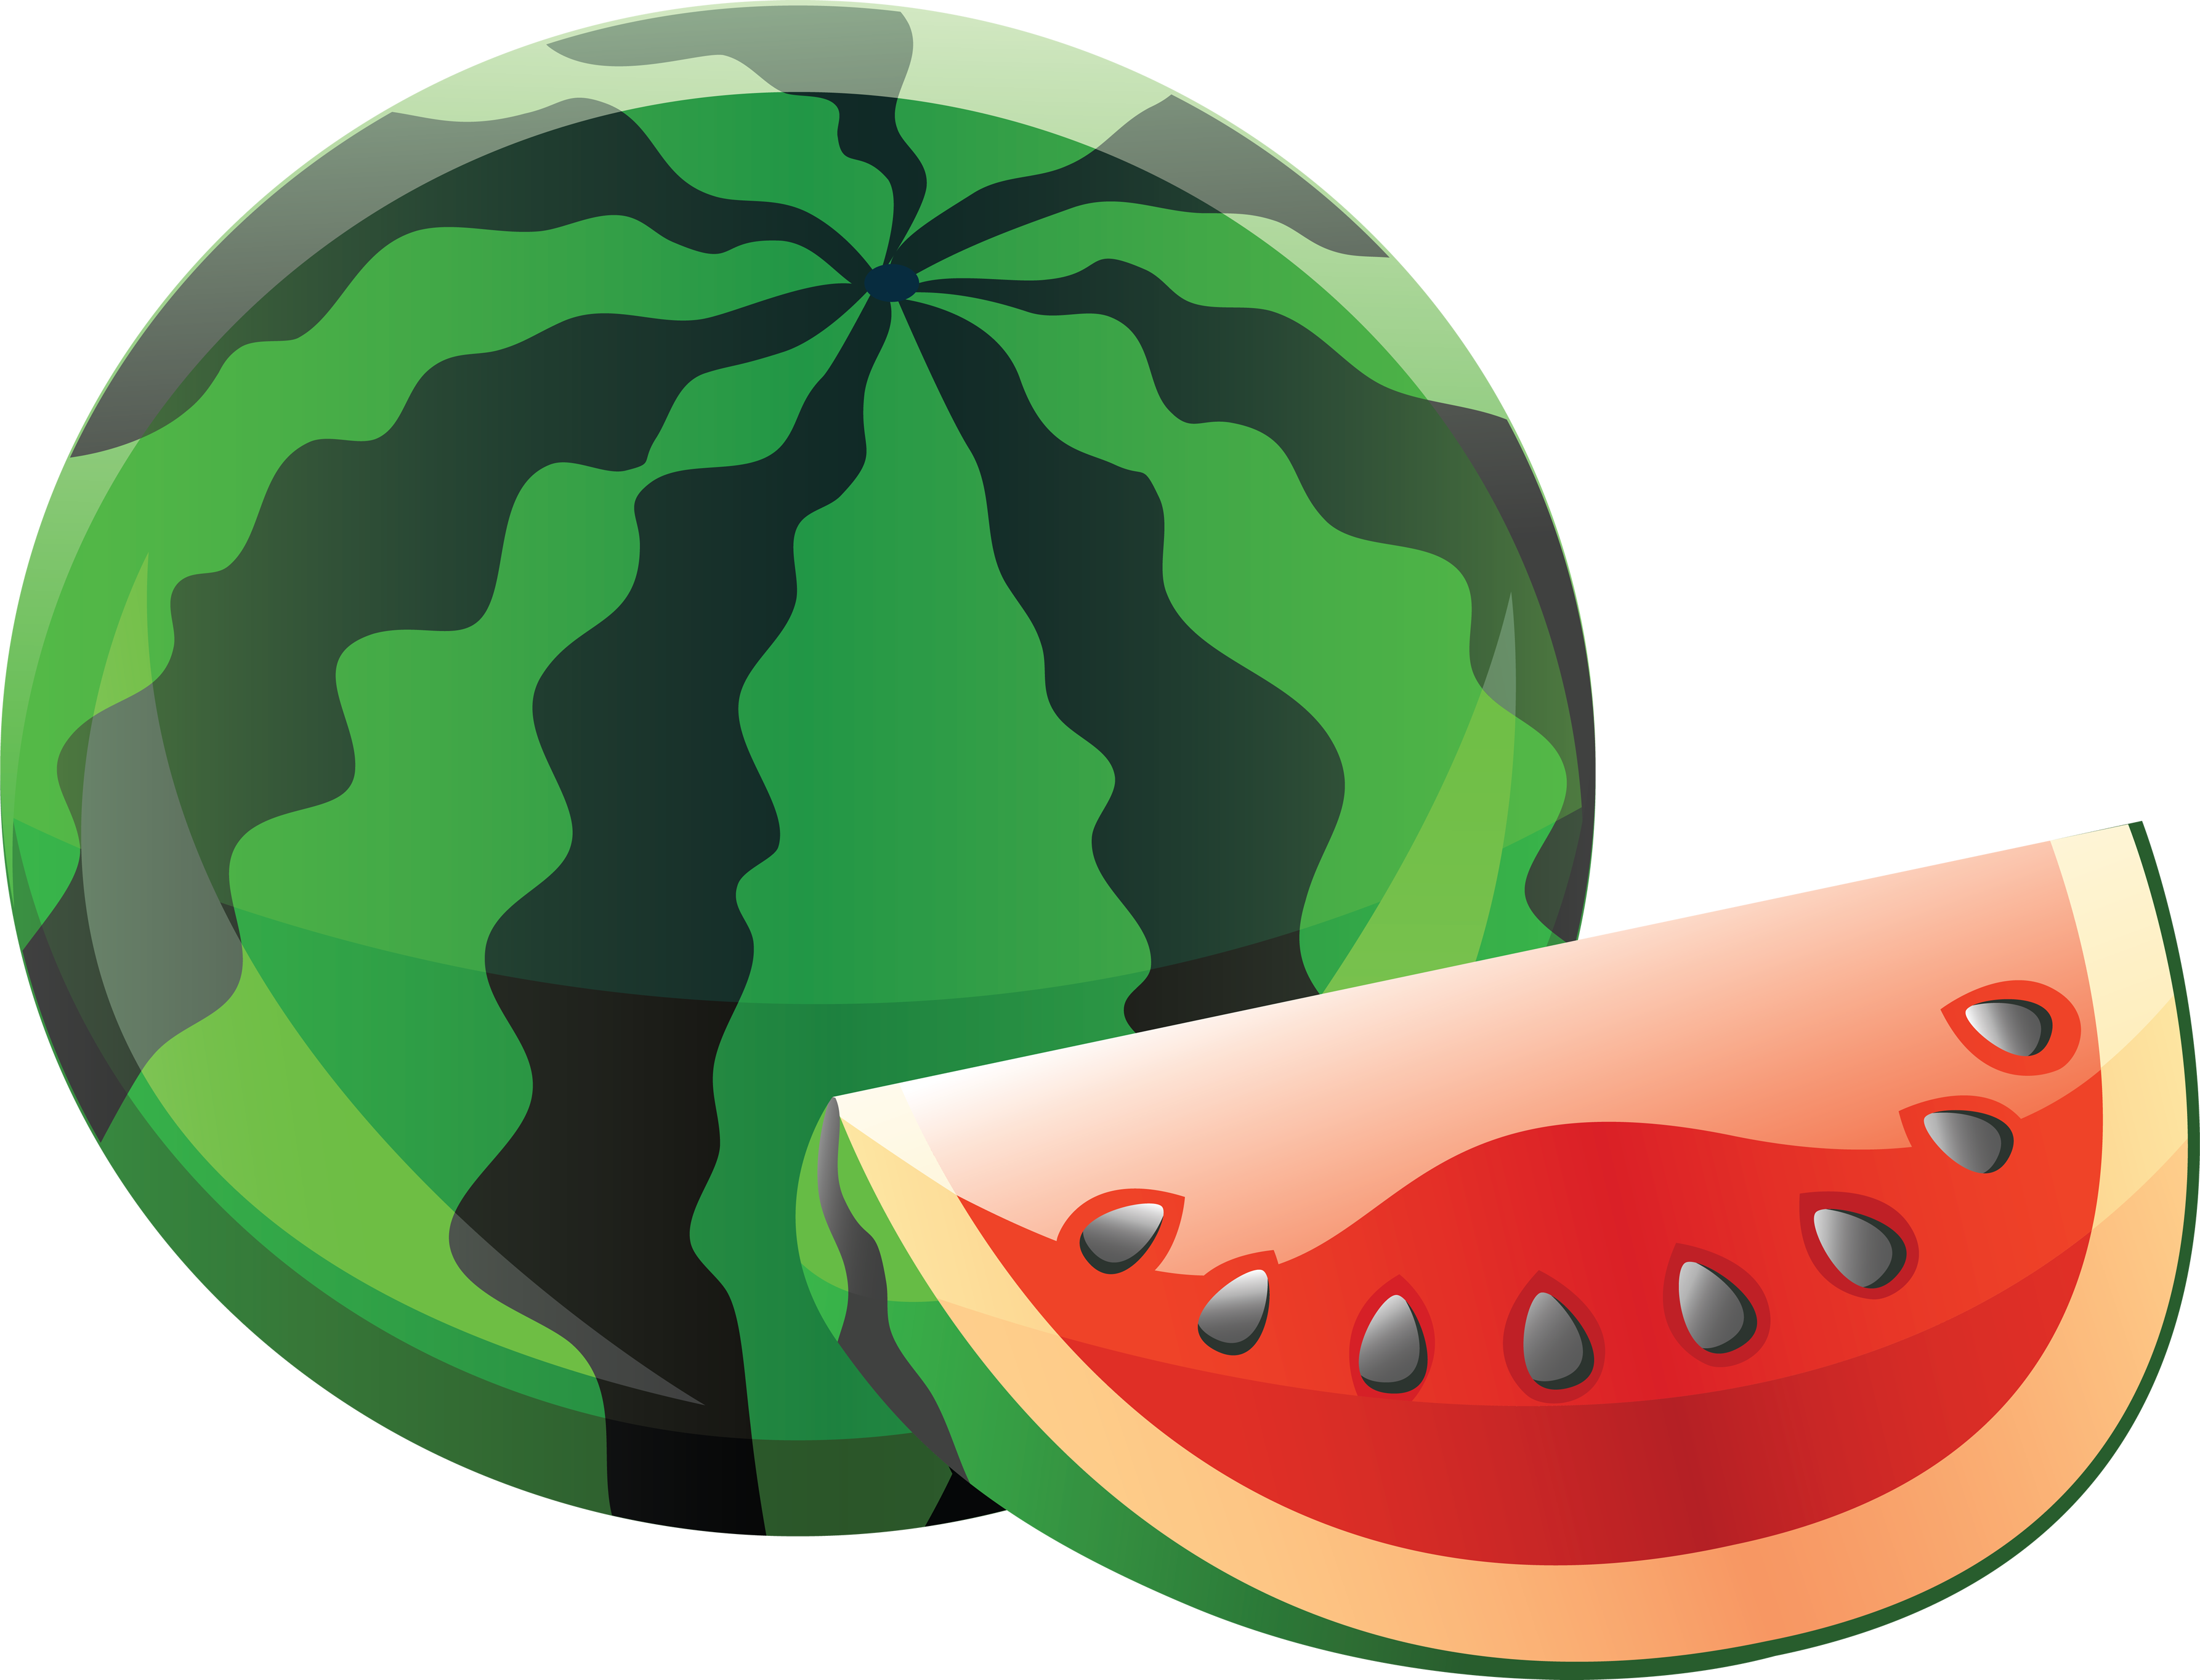 watermelon clipart juicy watermelon